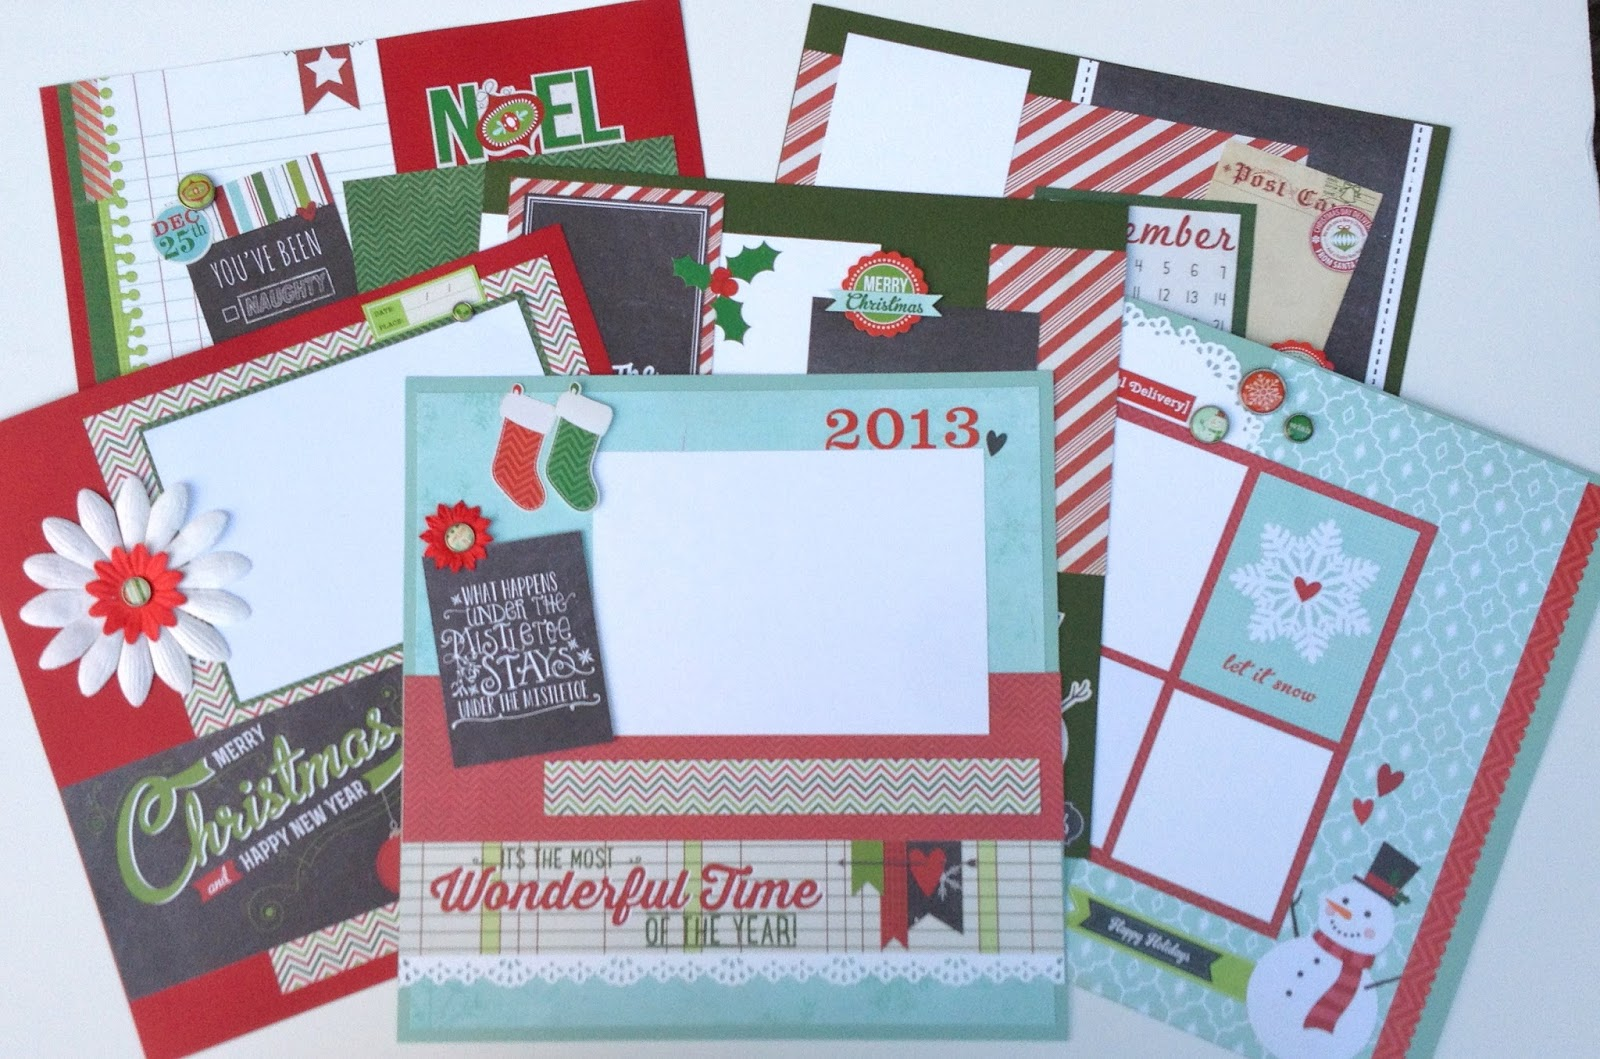 https://www.etsy.com/listing/167754405/six-christmas-12x12-scrapbook-pages-kit?ref=shop_home_active